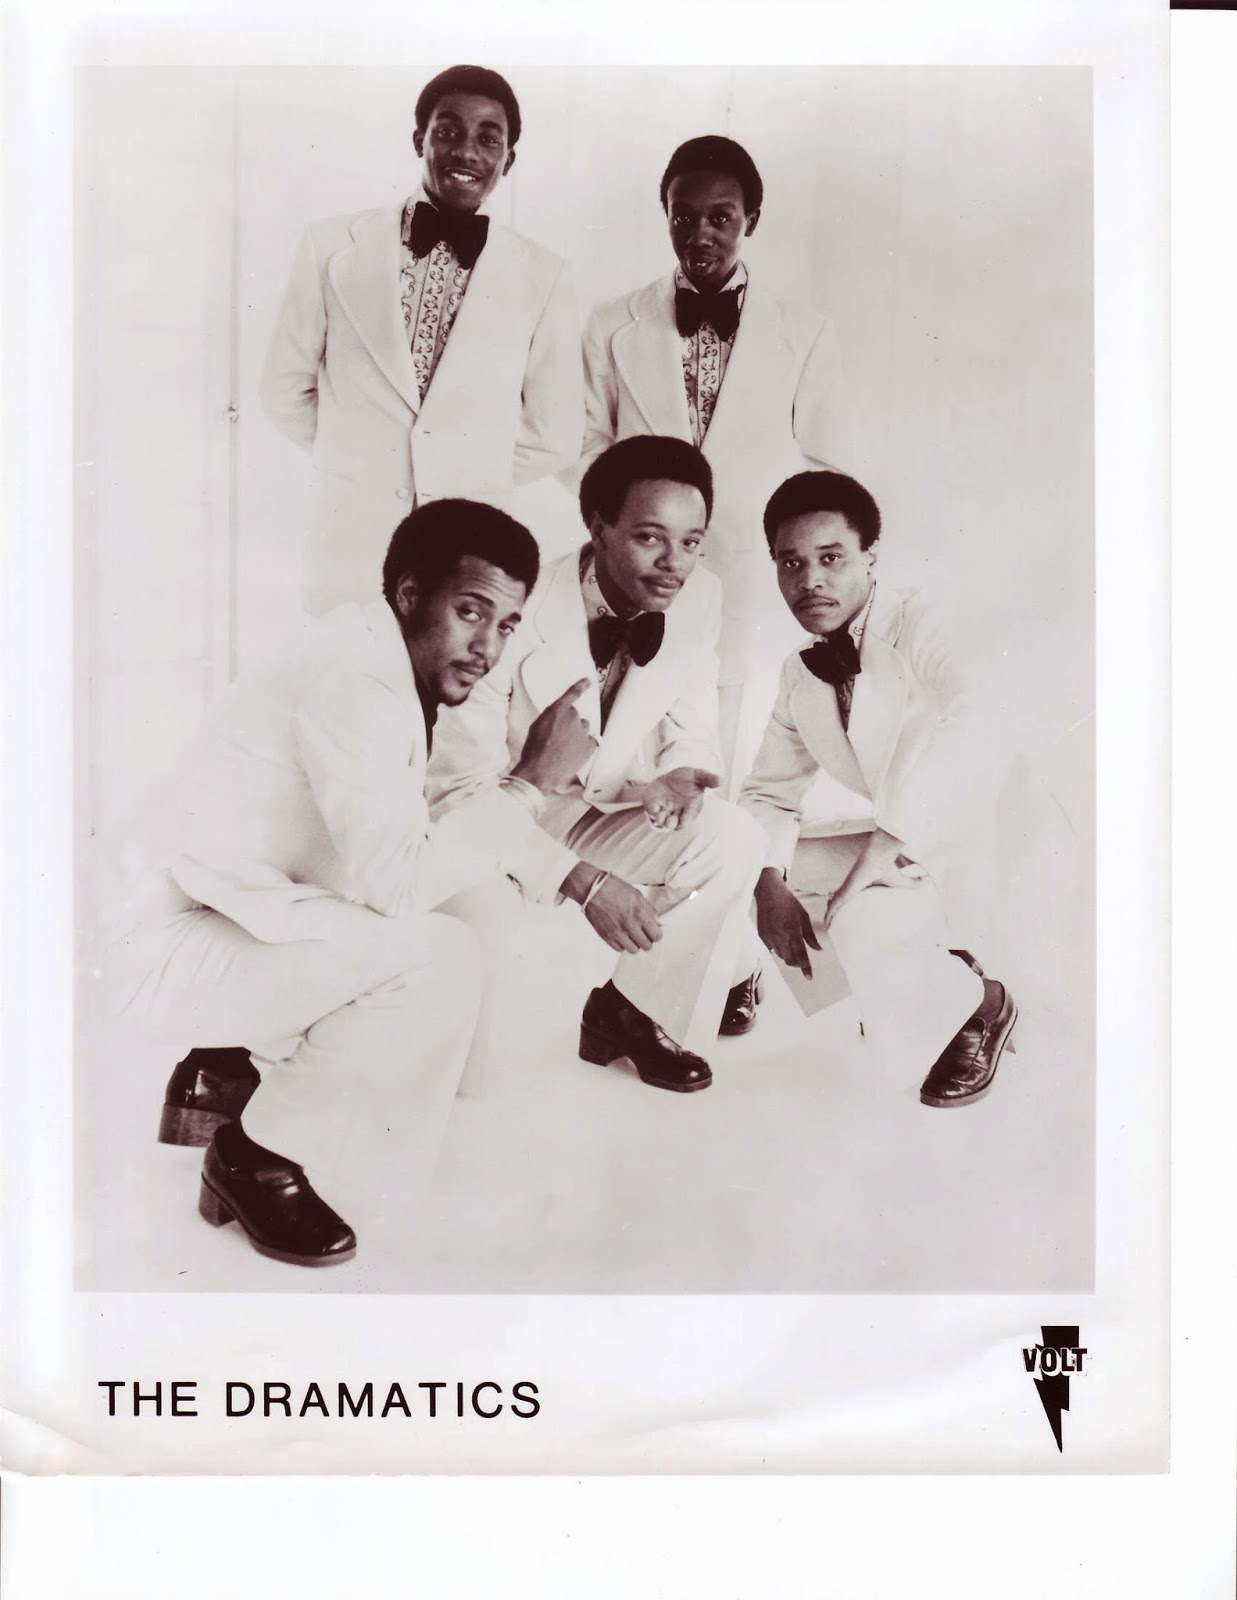 Dramatics, The - And I Panicked / Beware Of The Man (With The Candy In His Hand)